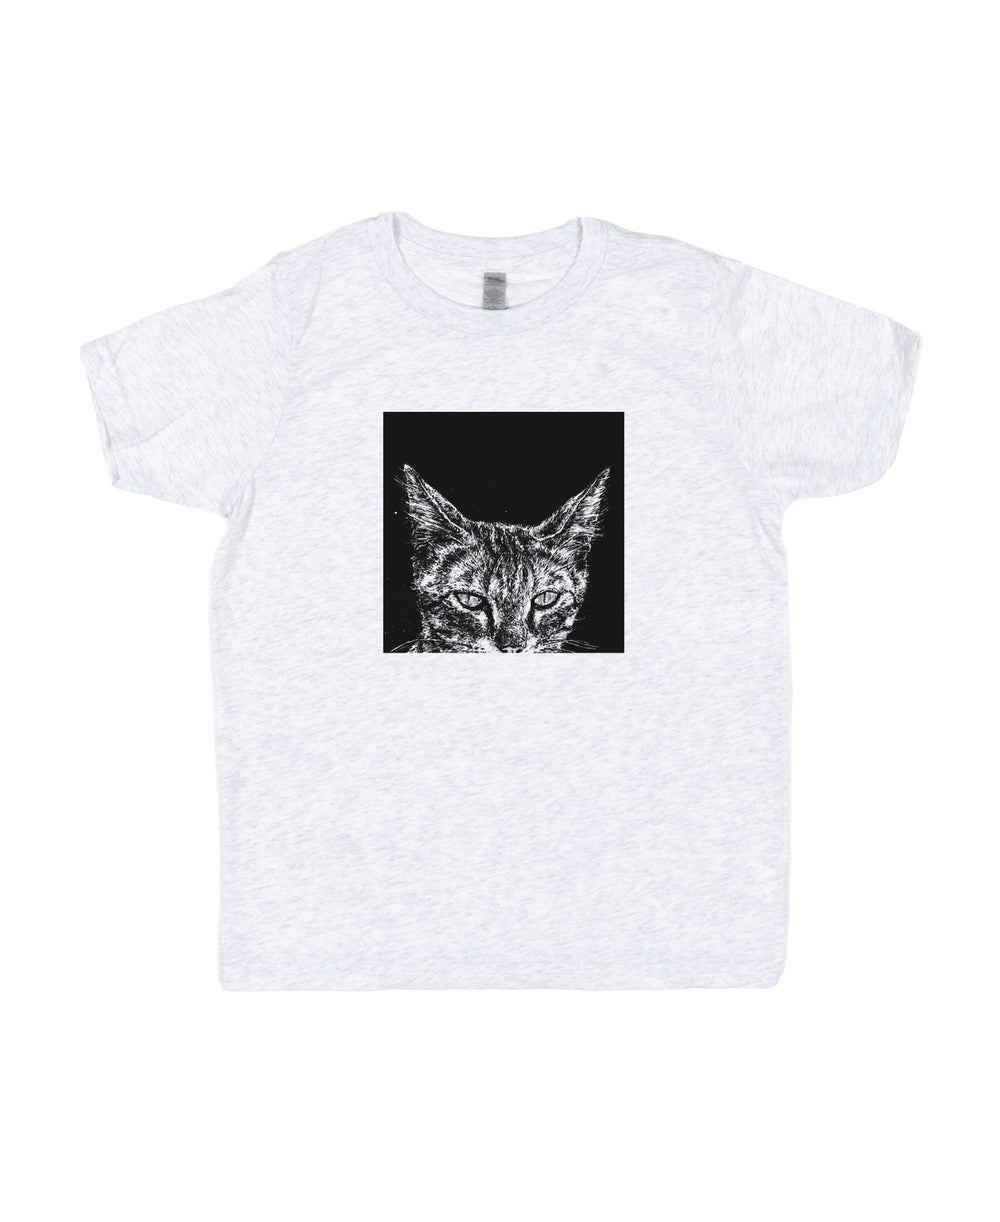 Image of Avive_Catchat Kids tee